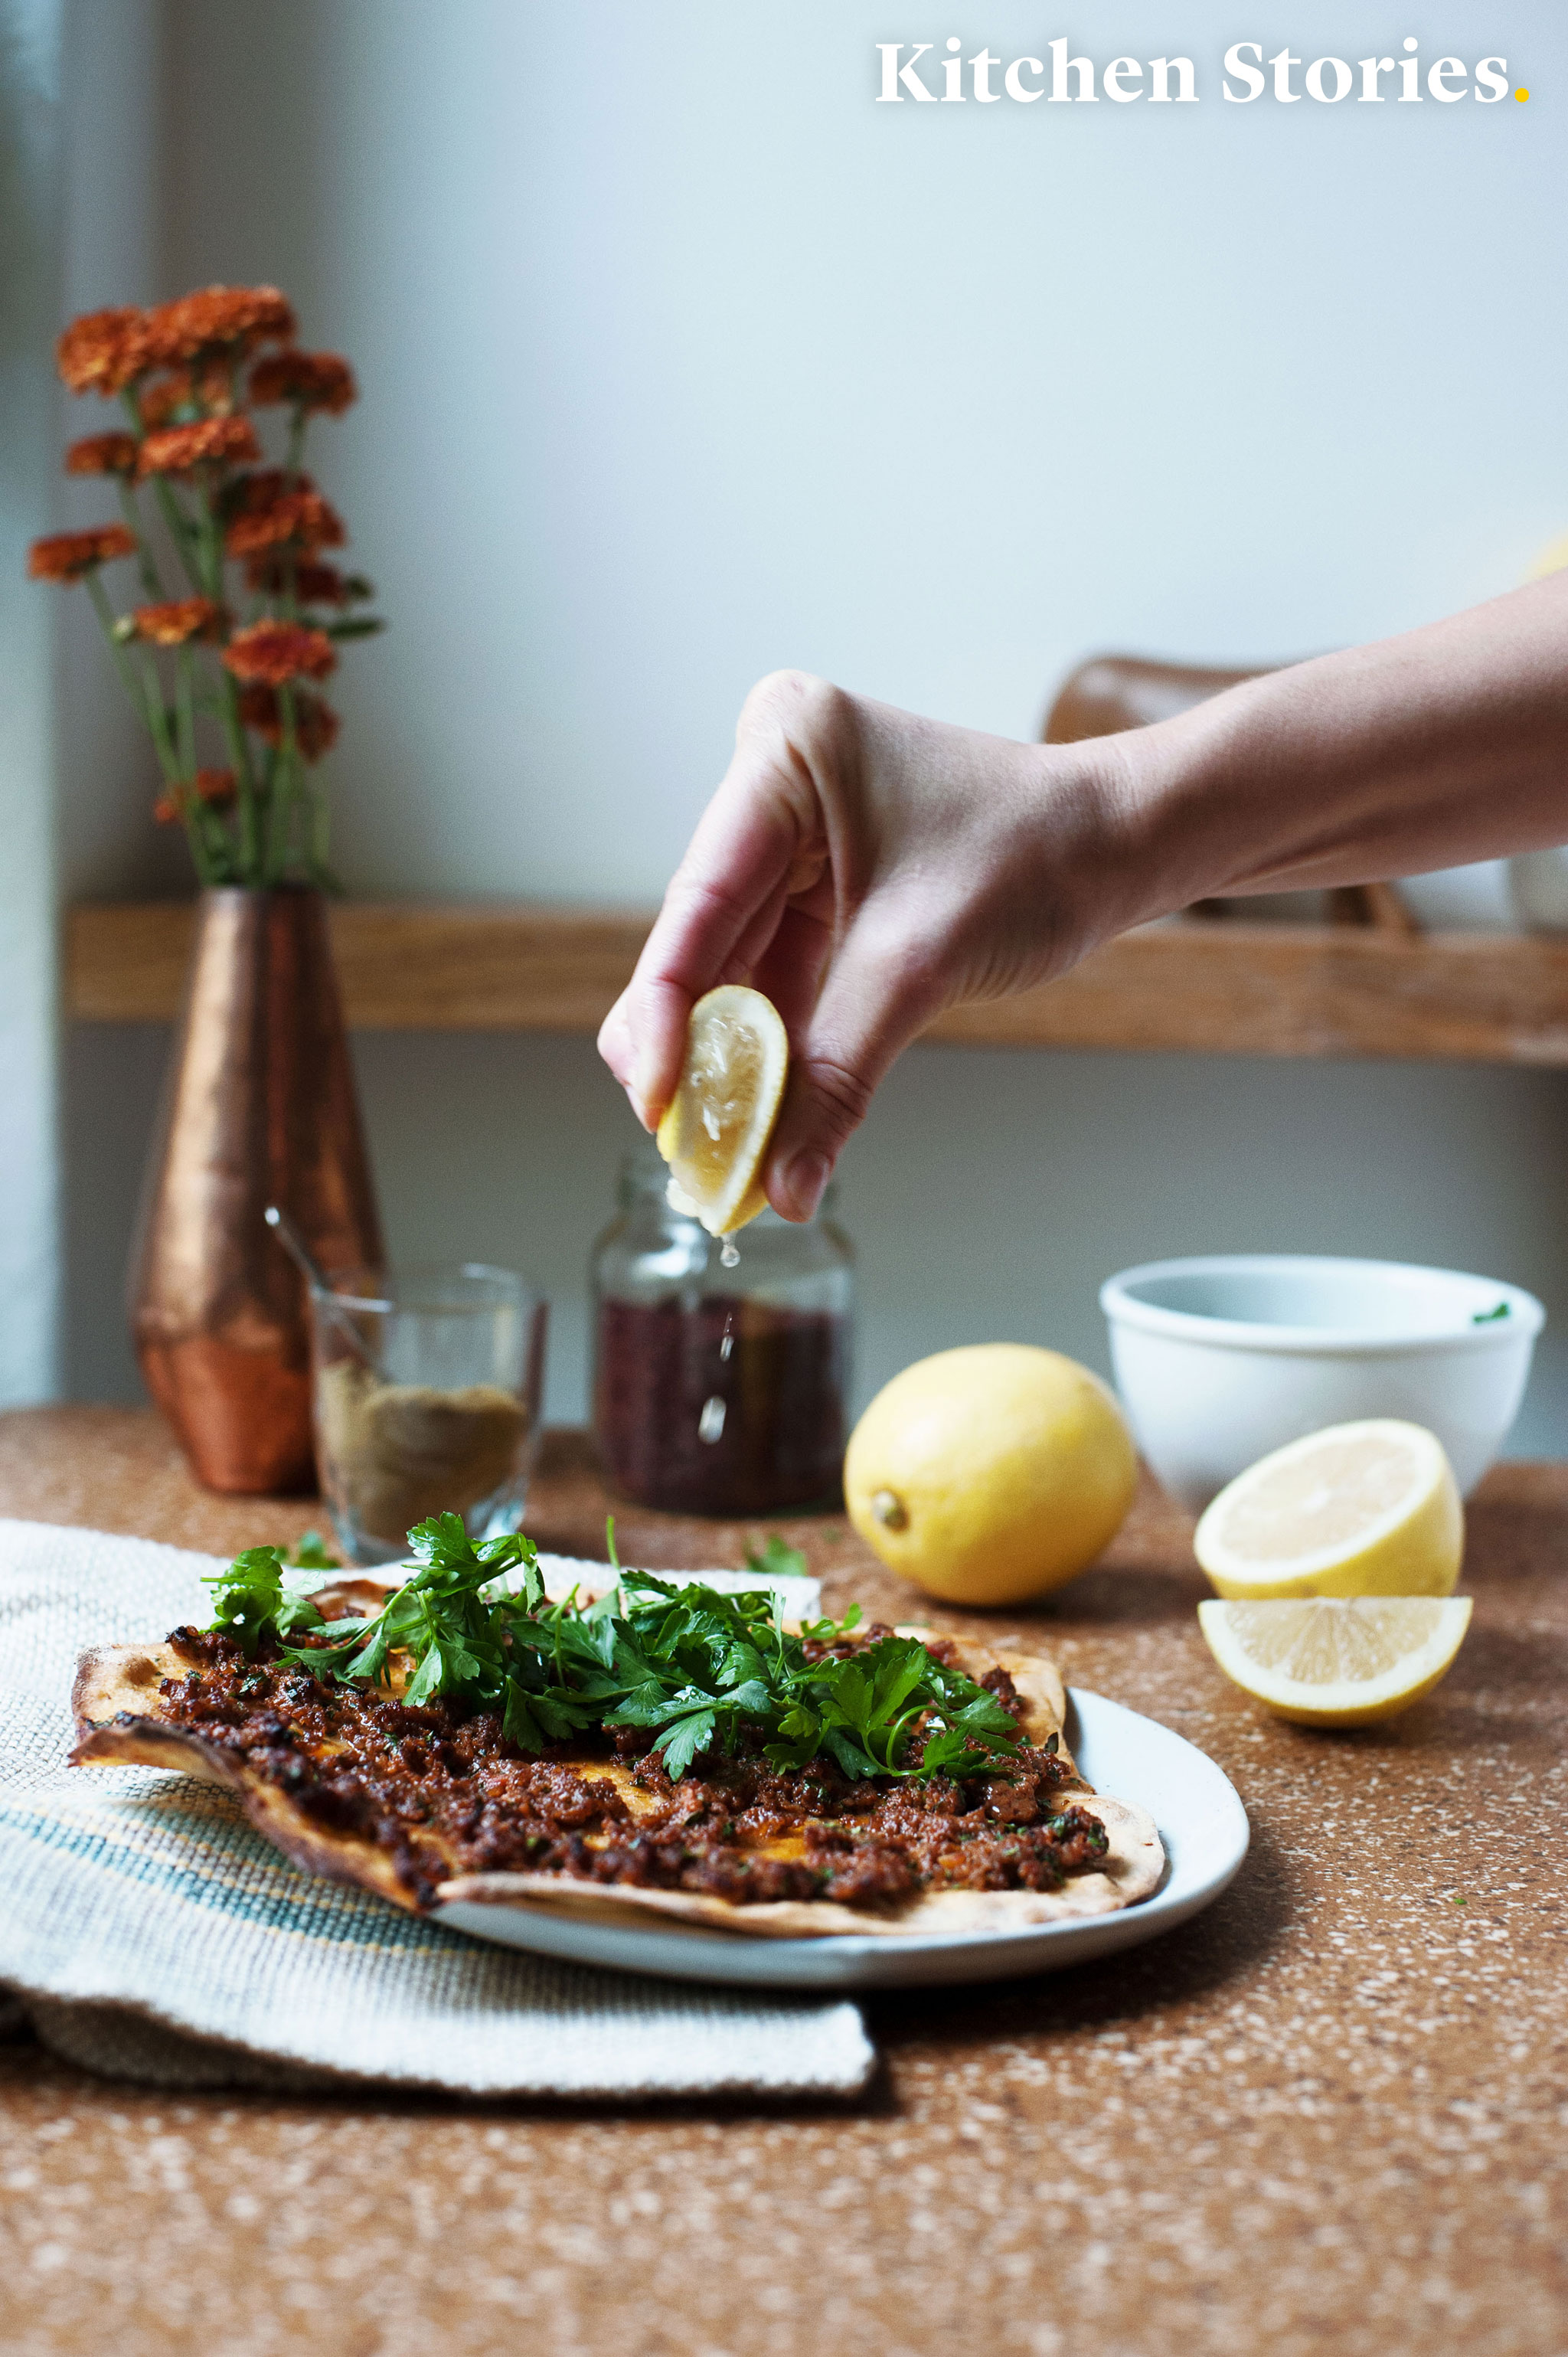 Homemade Turkish Pizza - Lahmacun with spelt flour